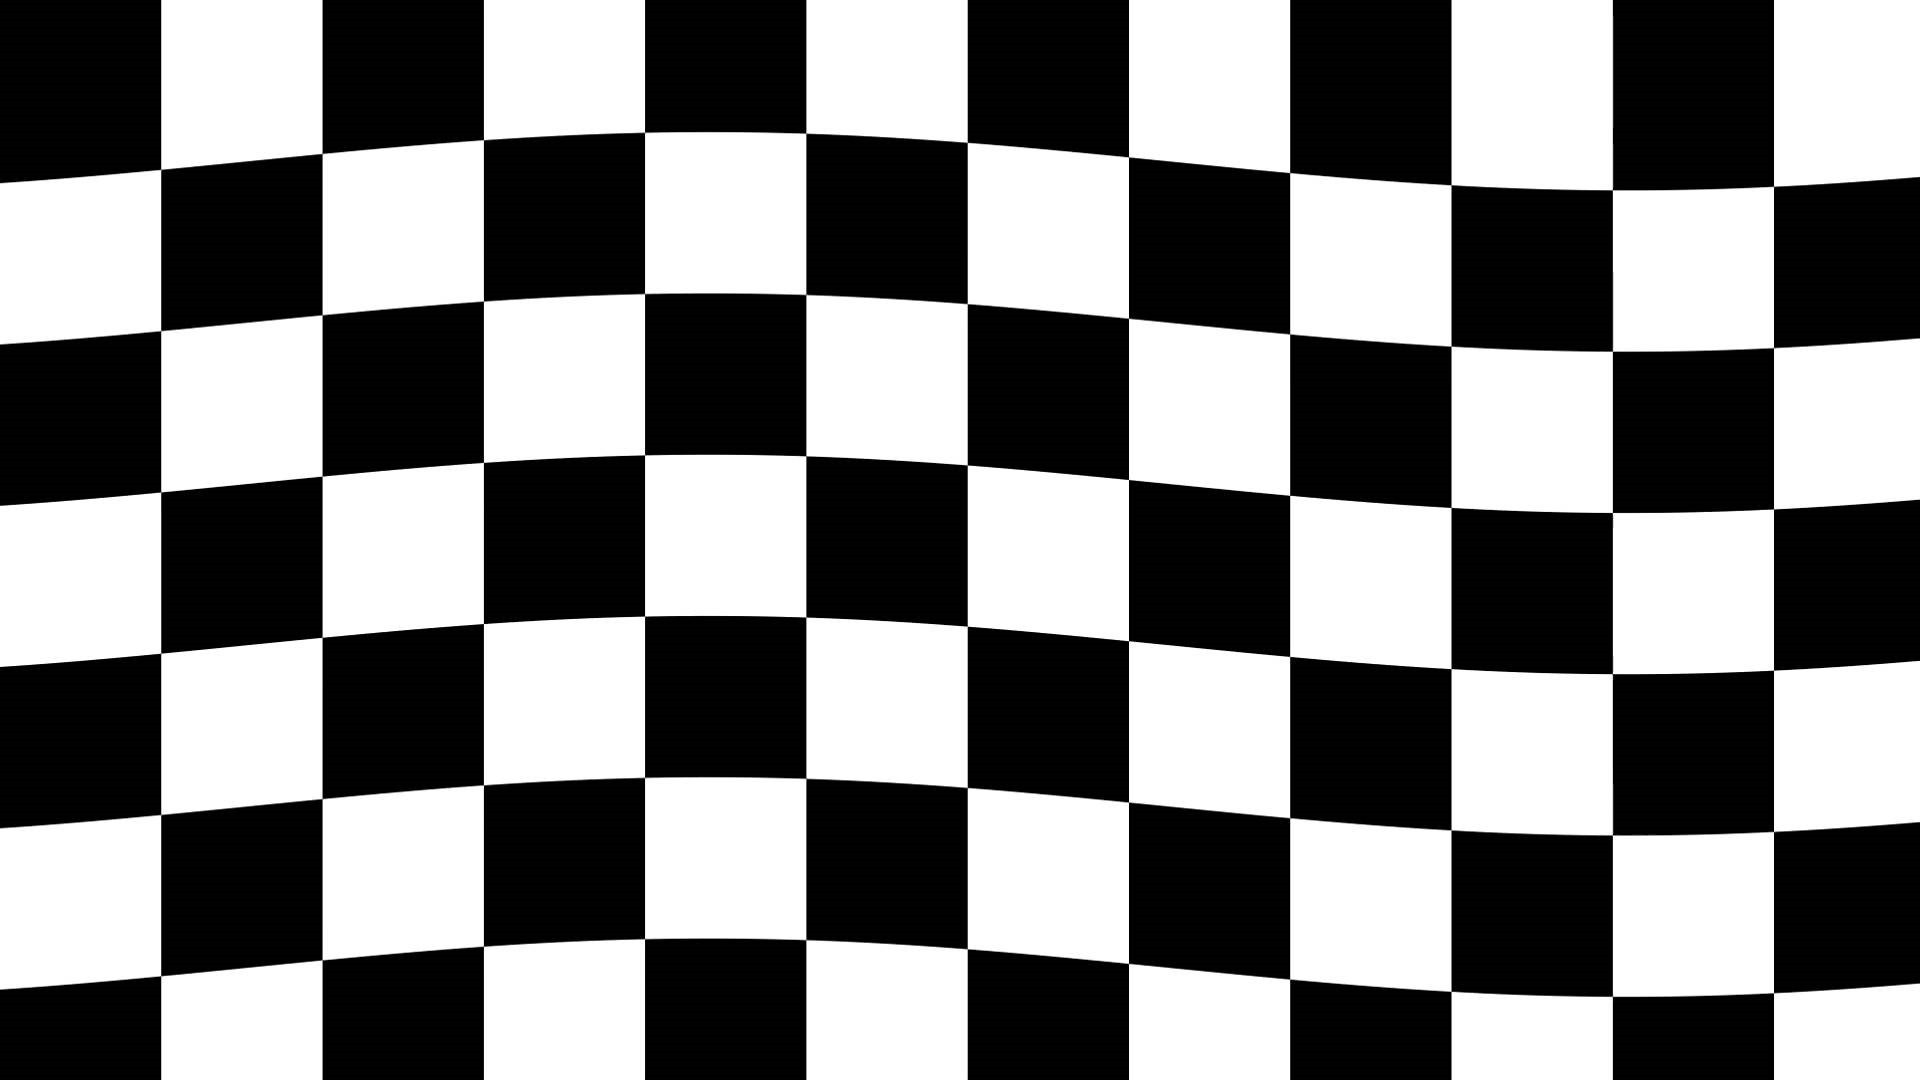 Checkered wallpaper photo hd